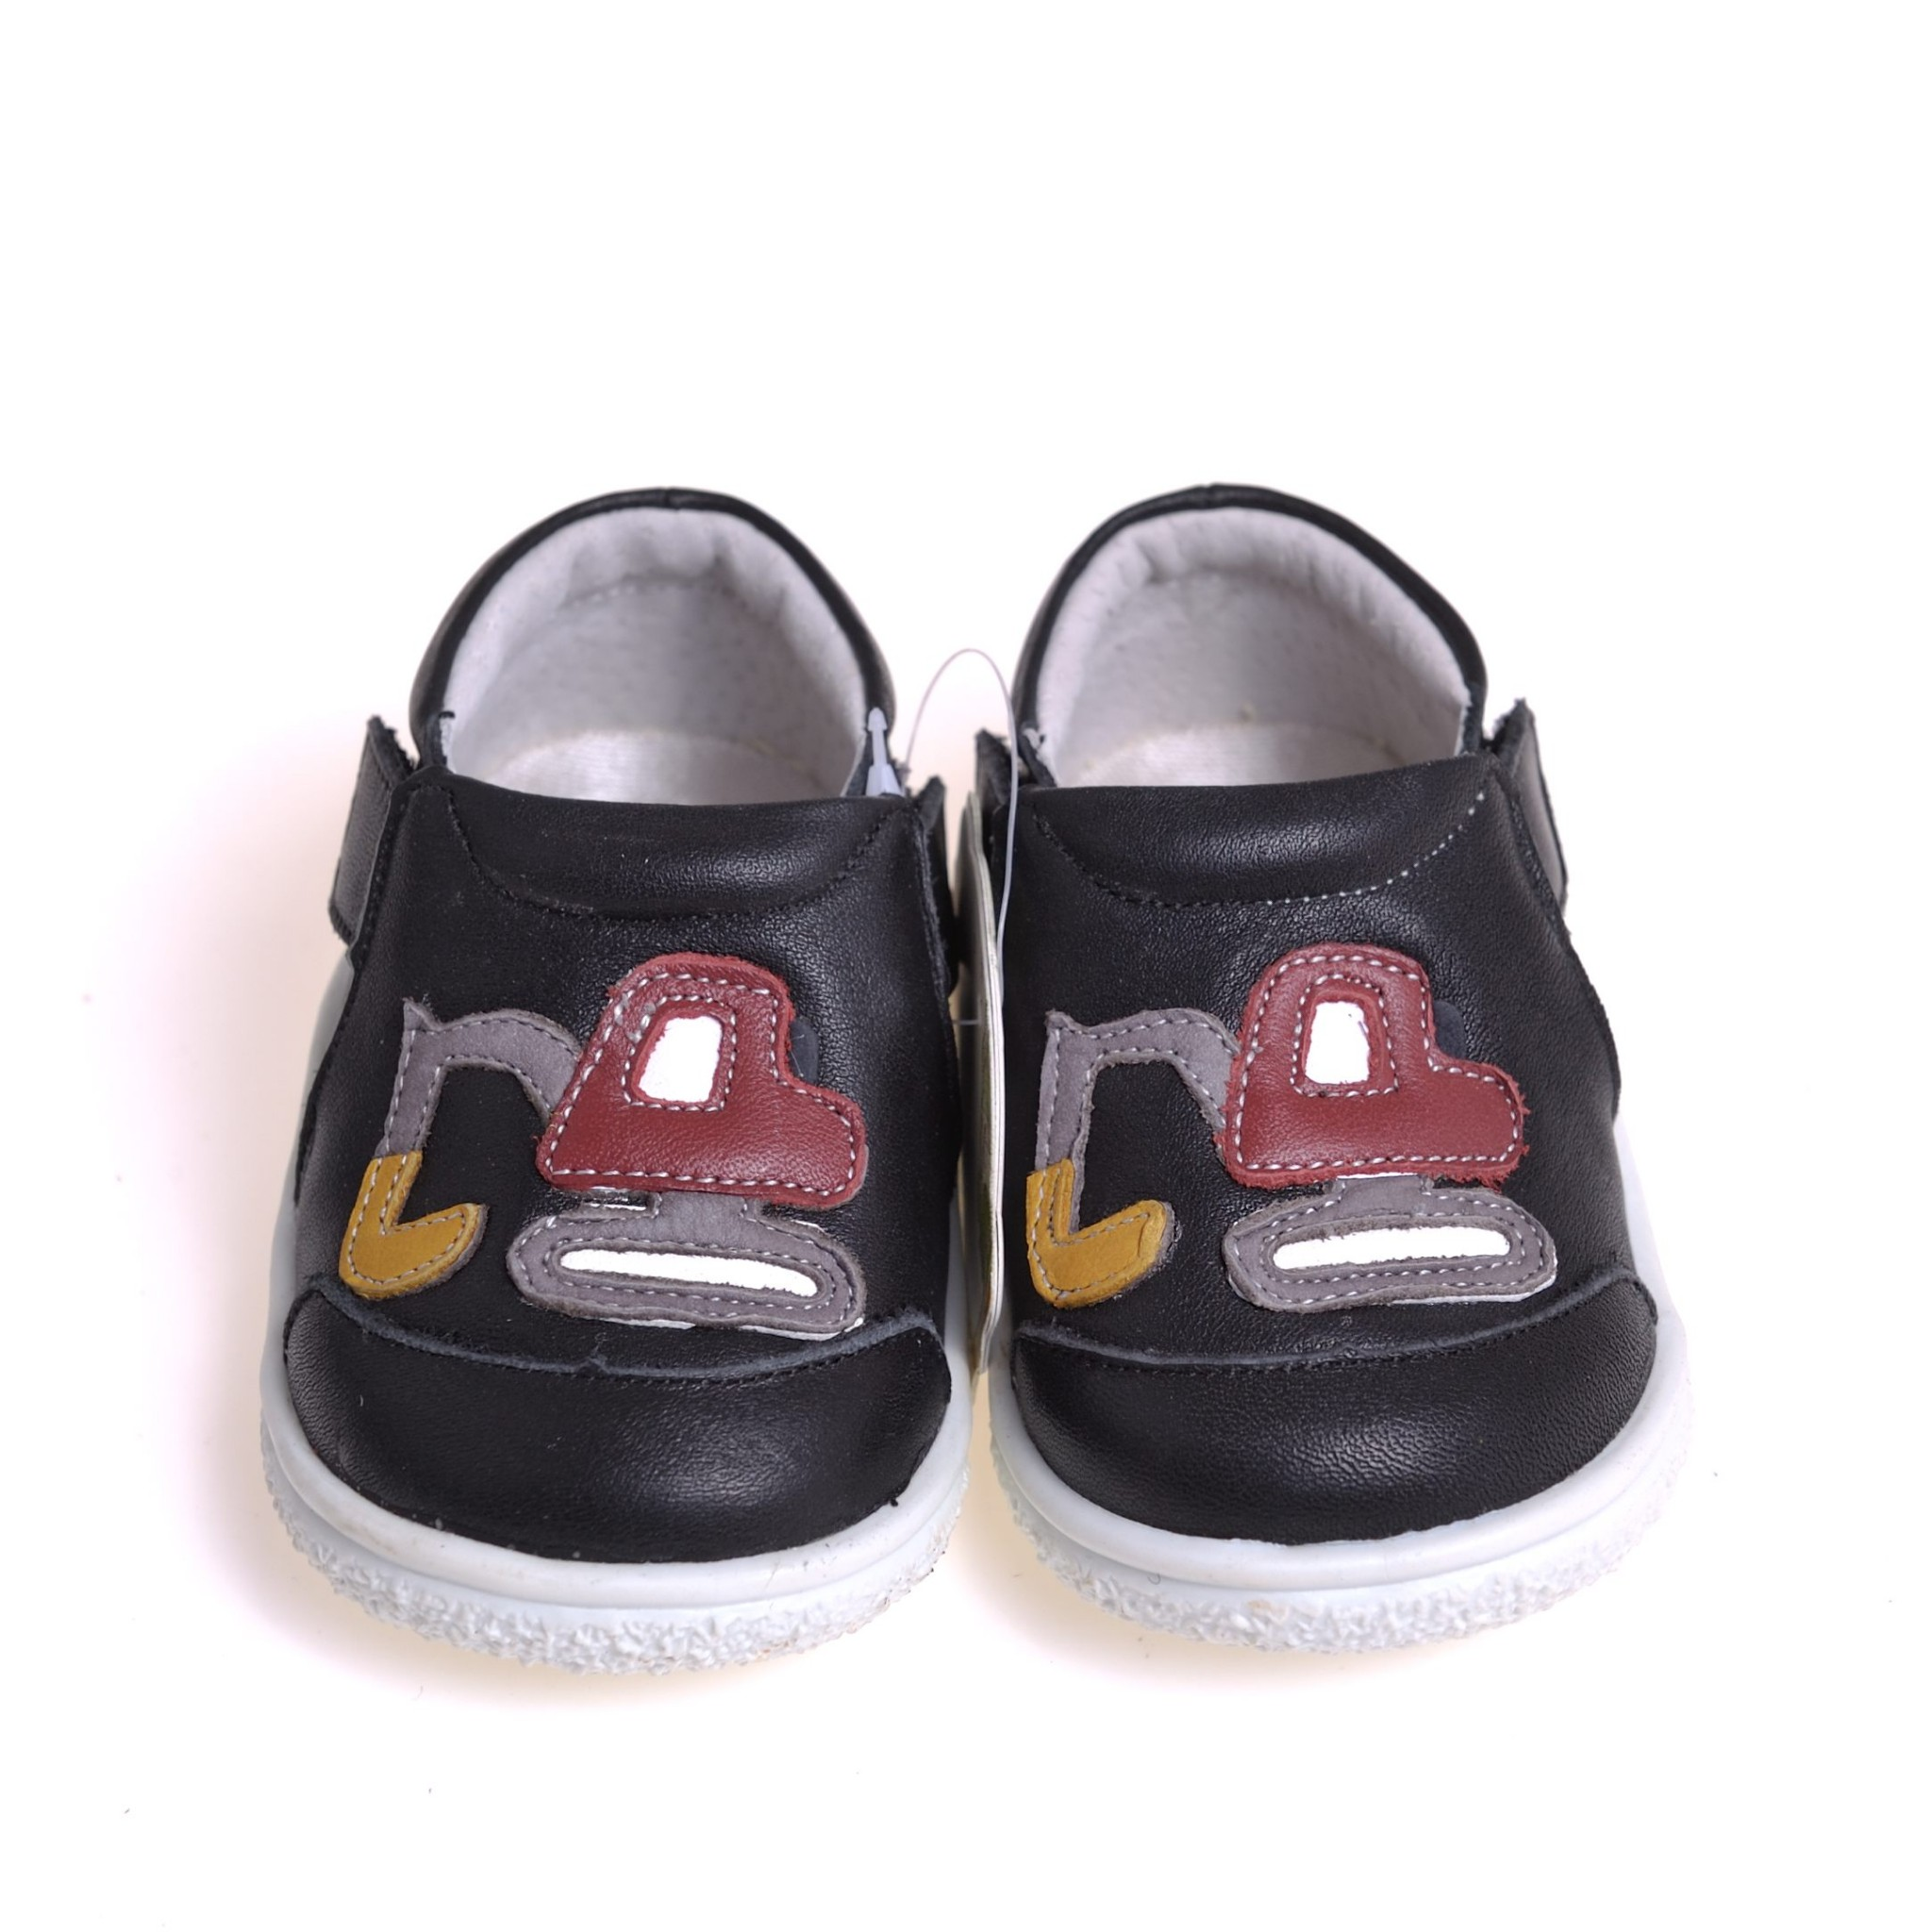 b0f8281745ee4 Digger - Black - Baby Shoes